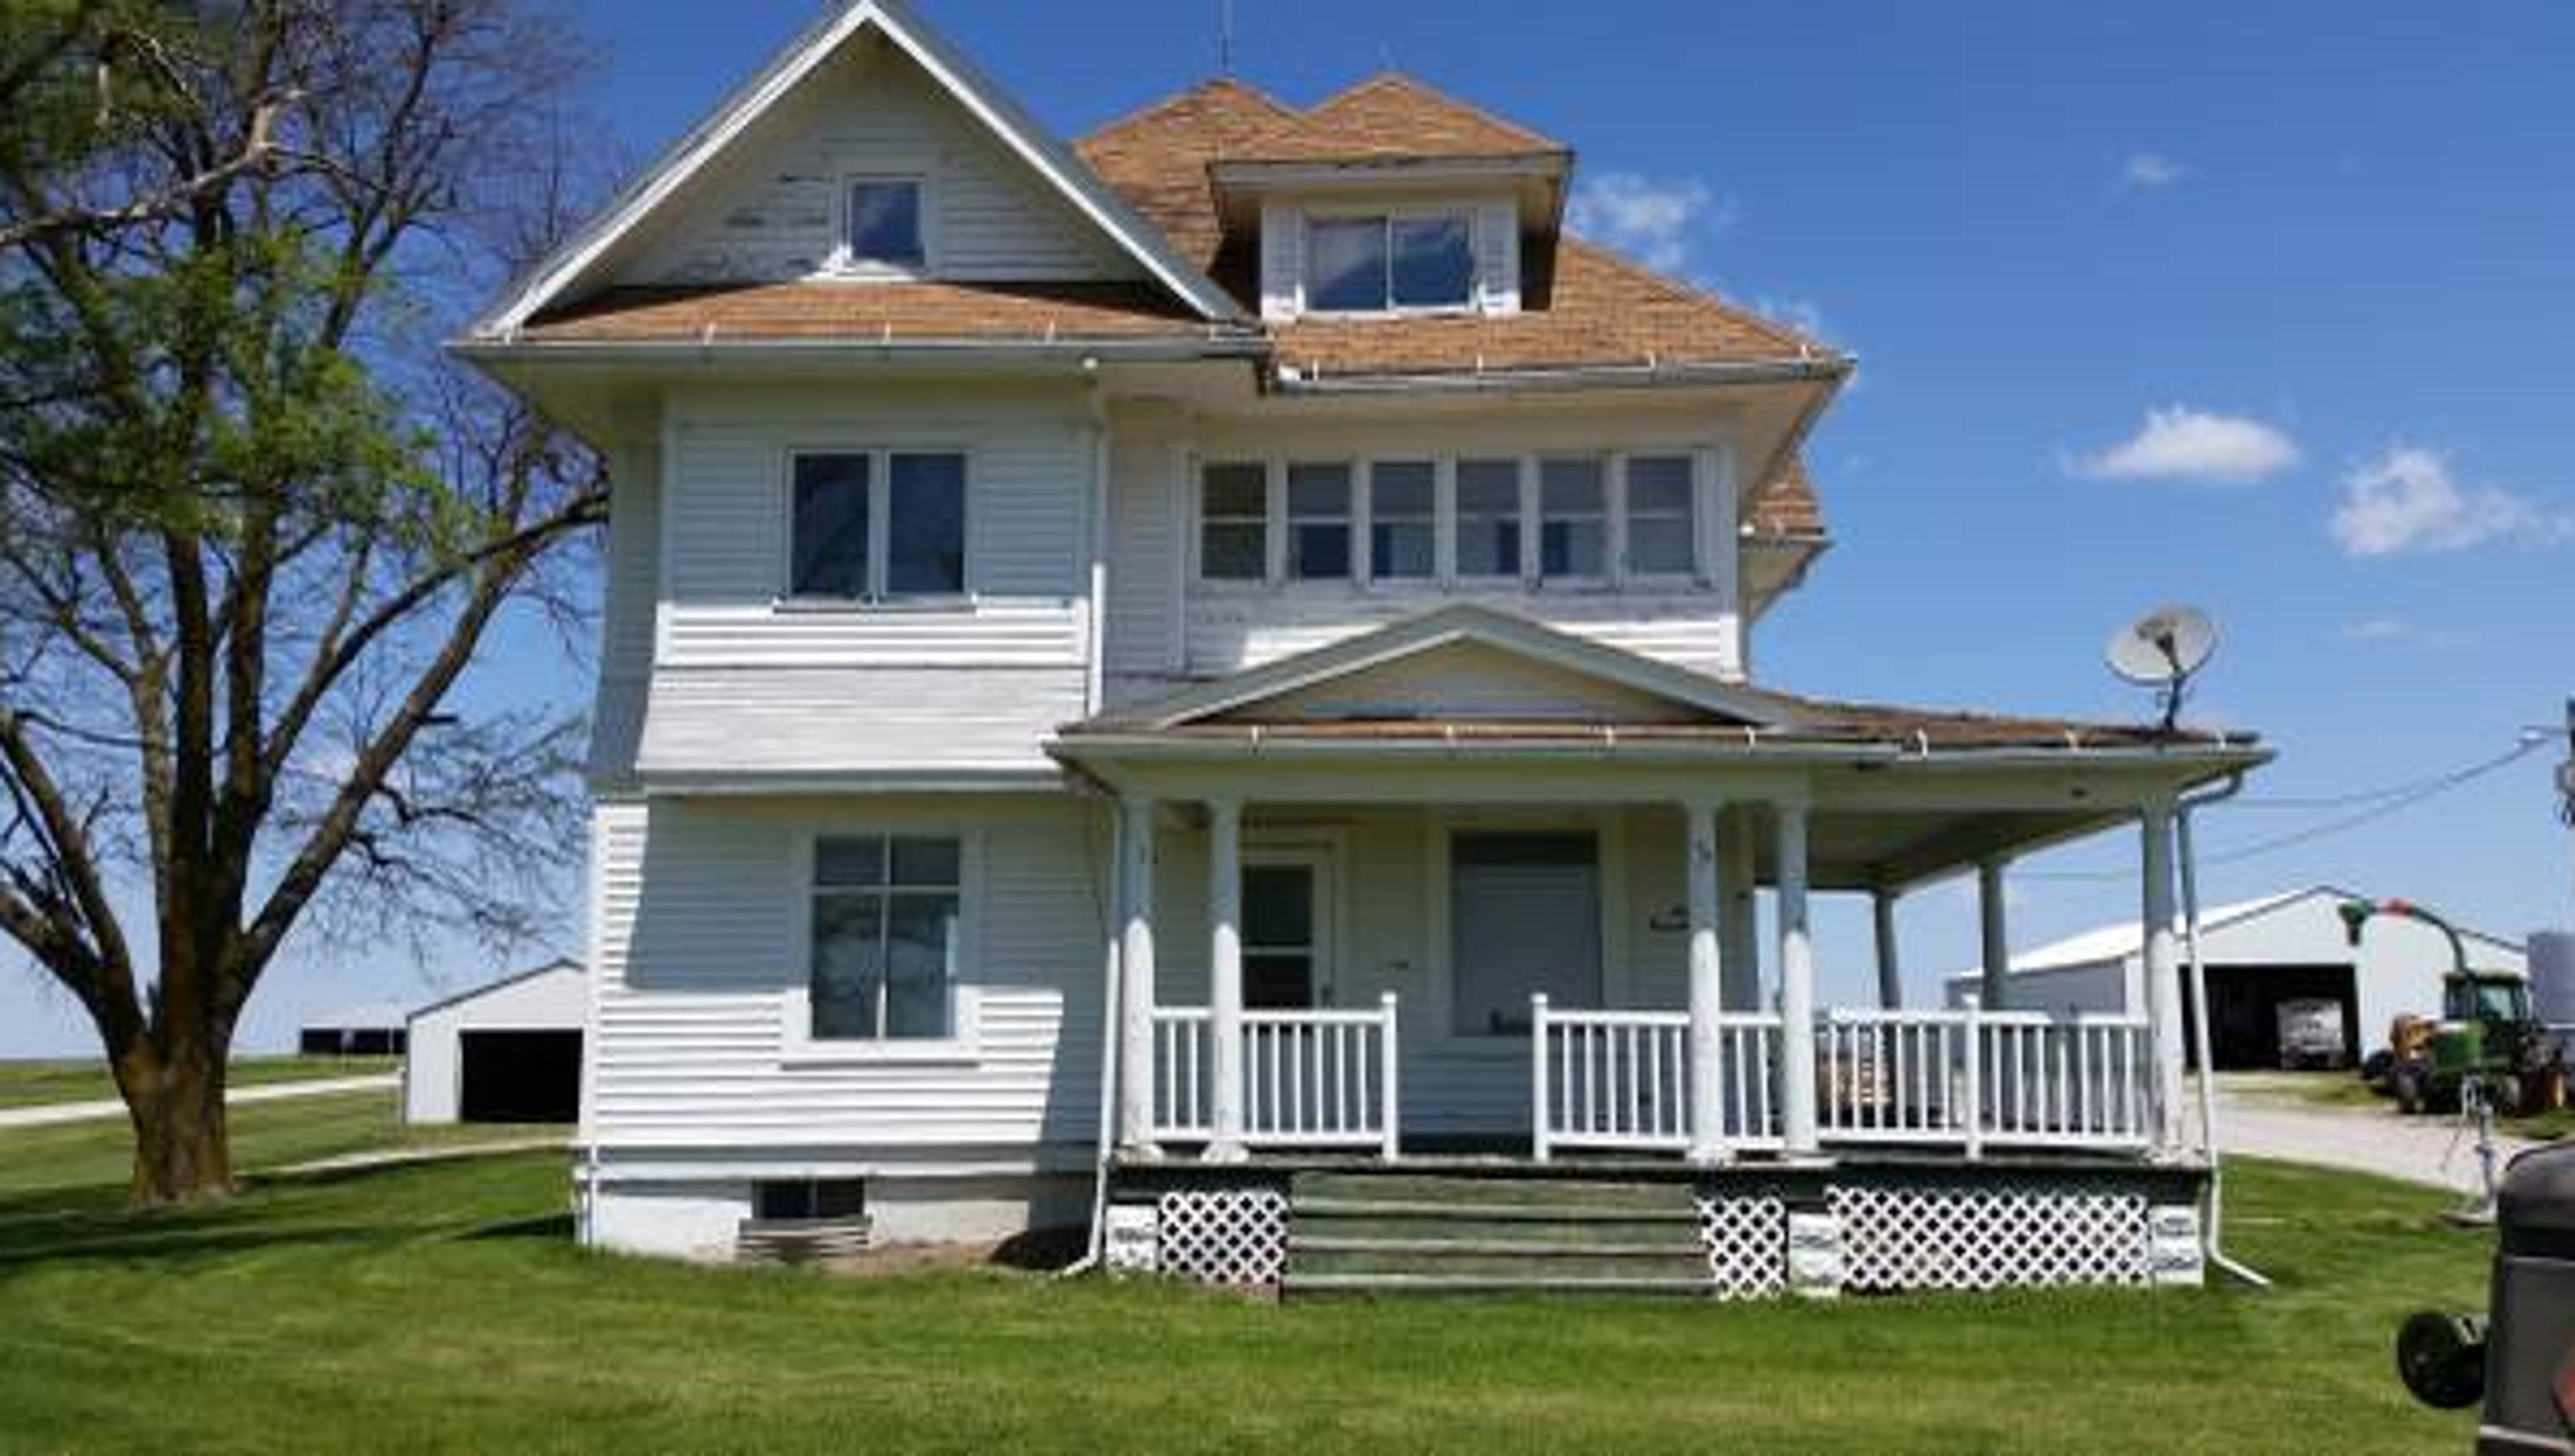 Iowa s free farmhouse finds a new home